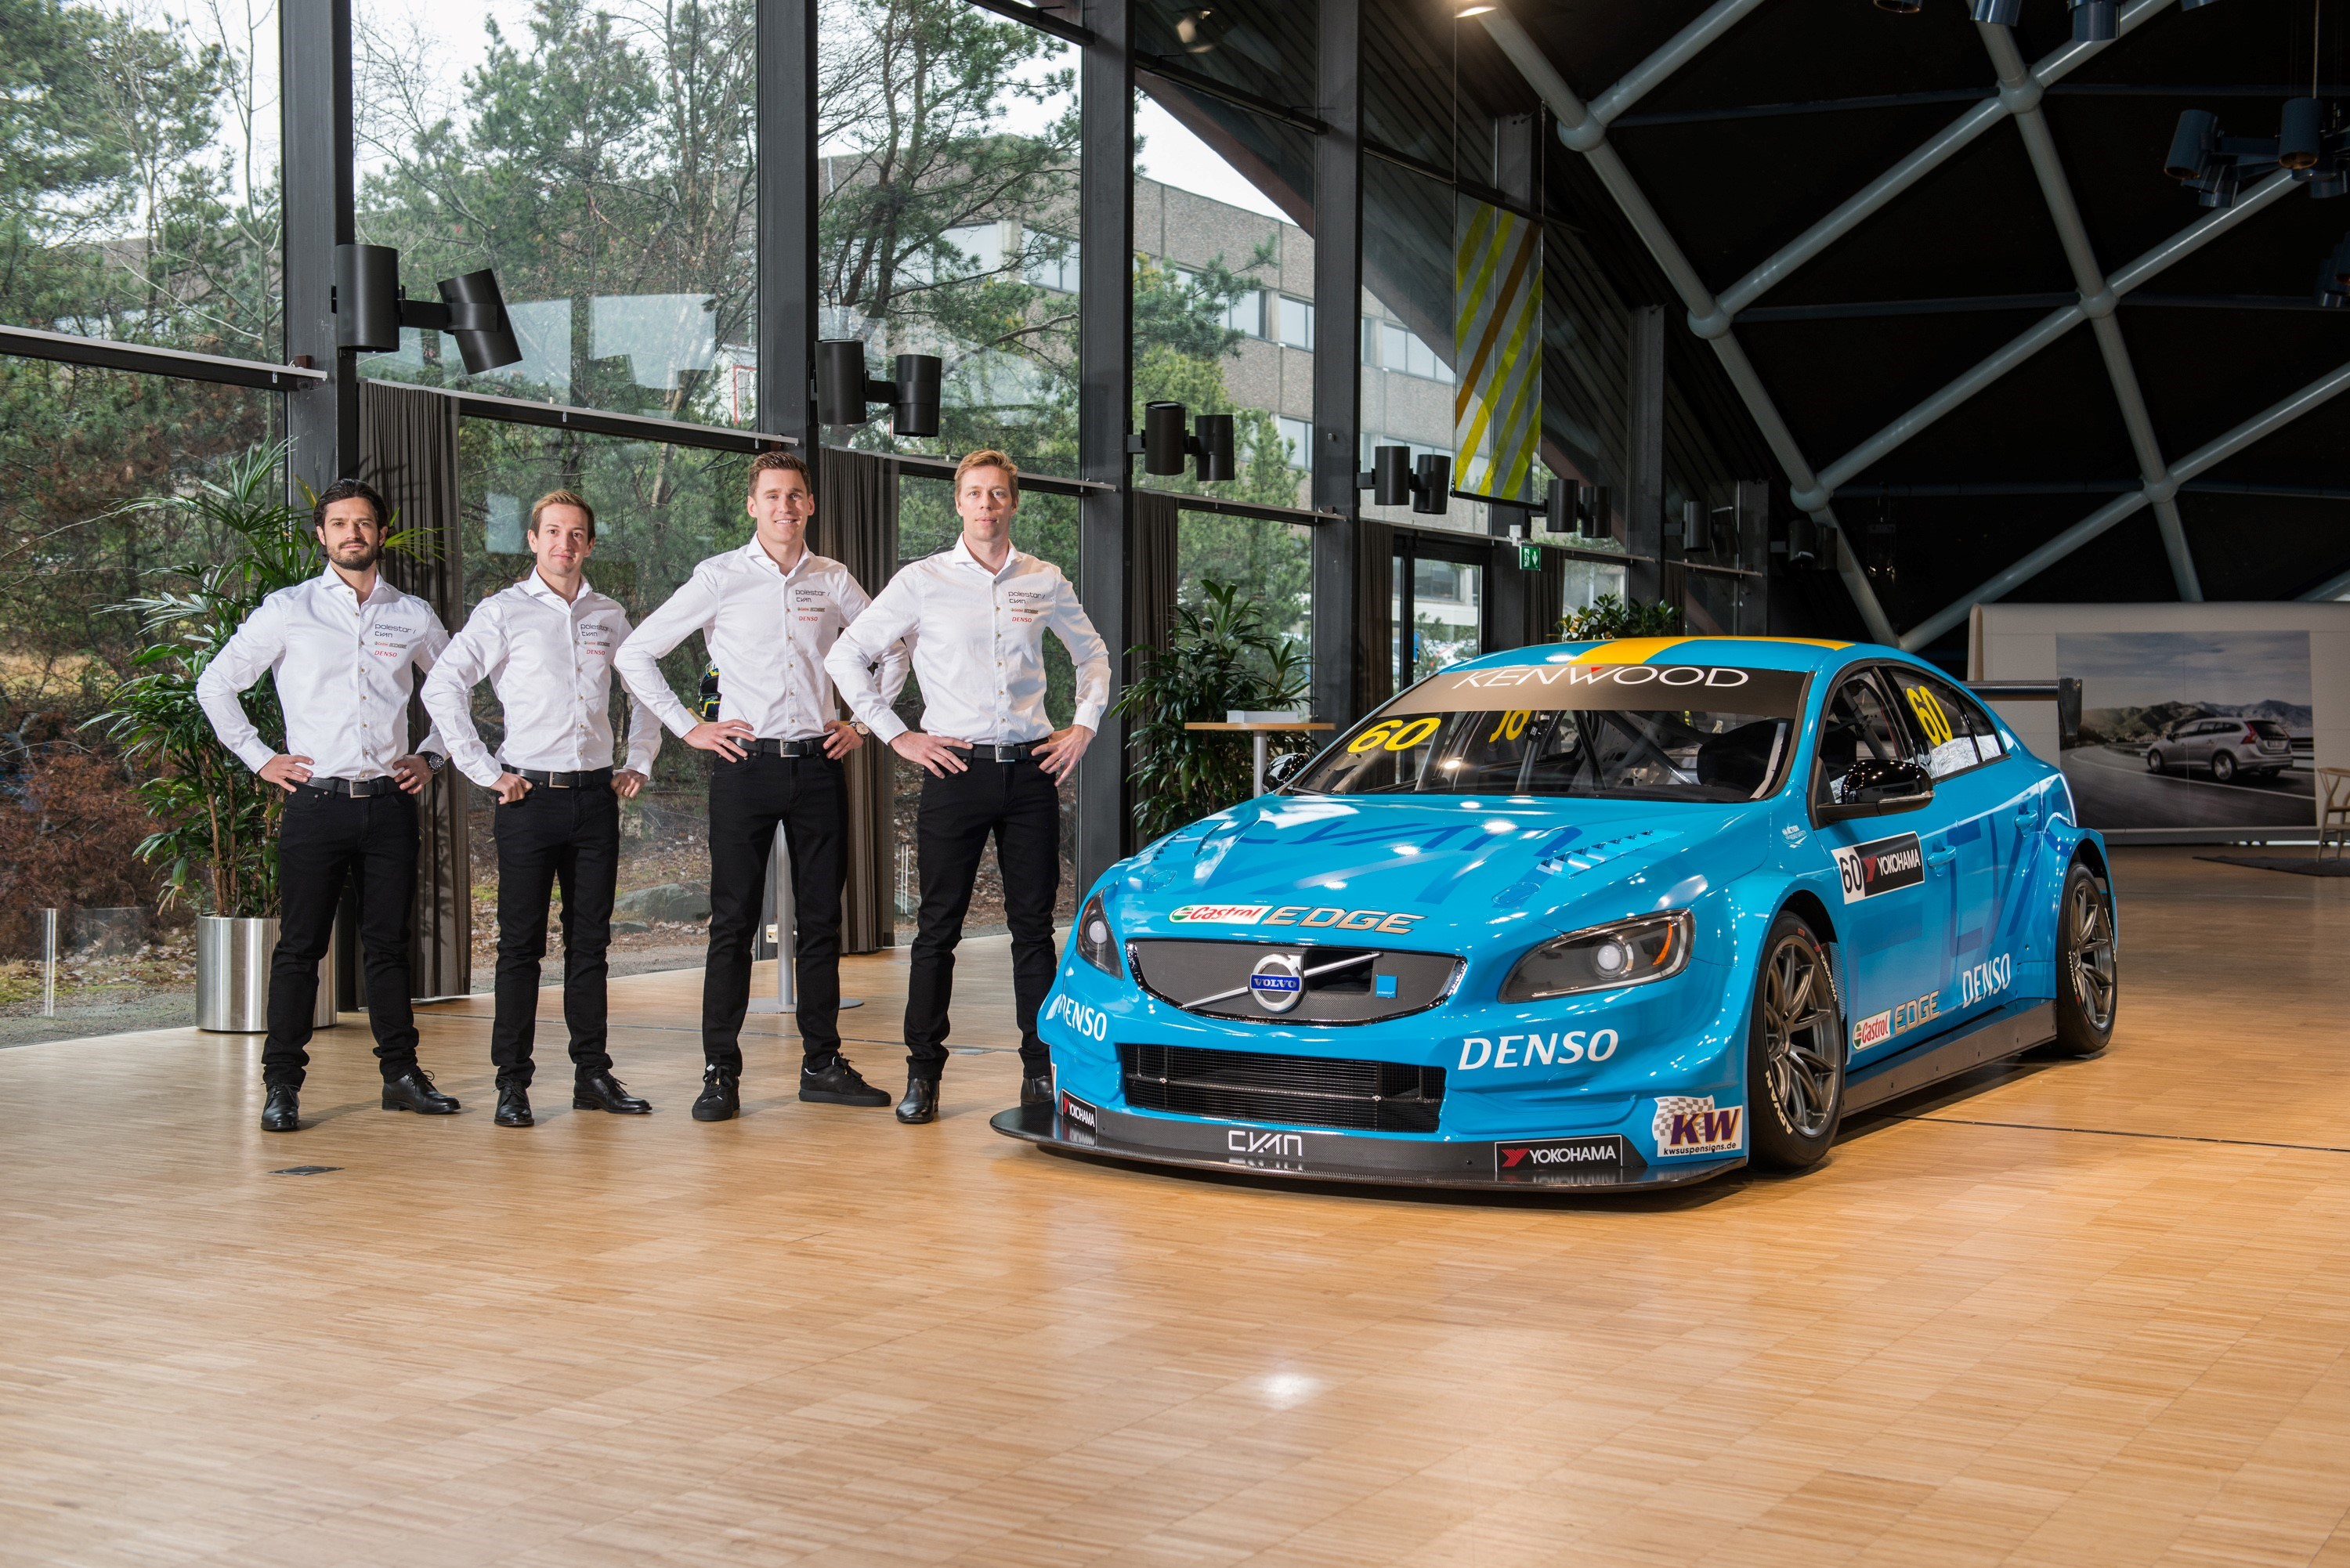 204580_polestar_cyan_racing_targets_world_title_with_expanded_wtcc_programme.jpg